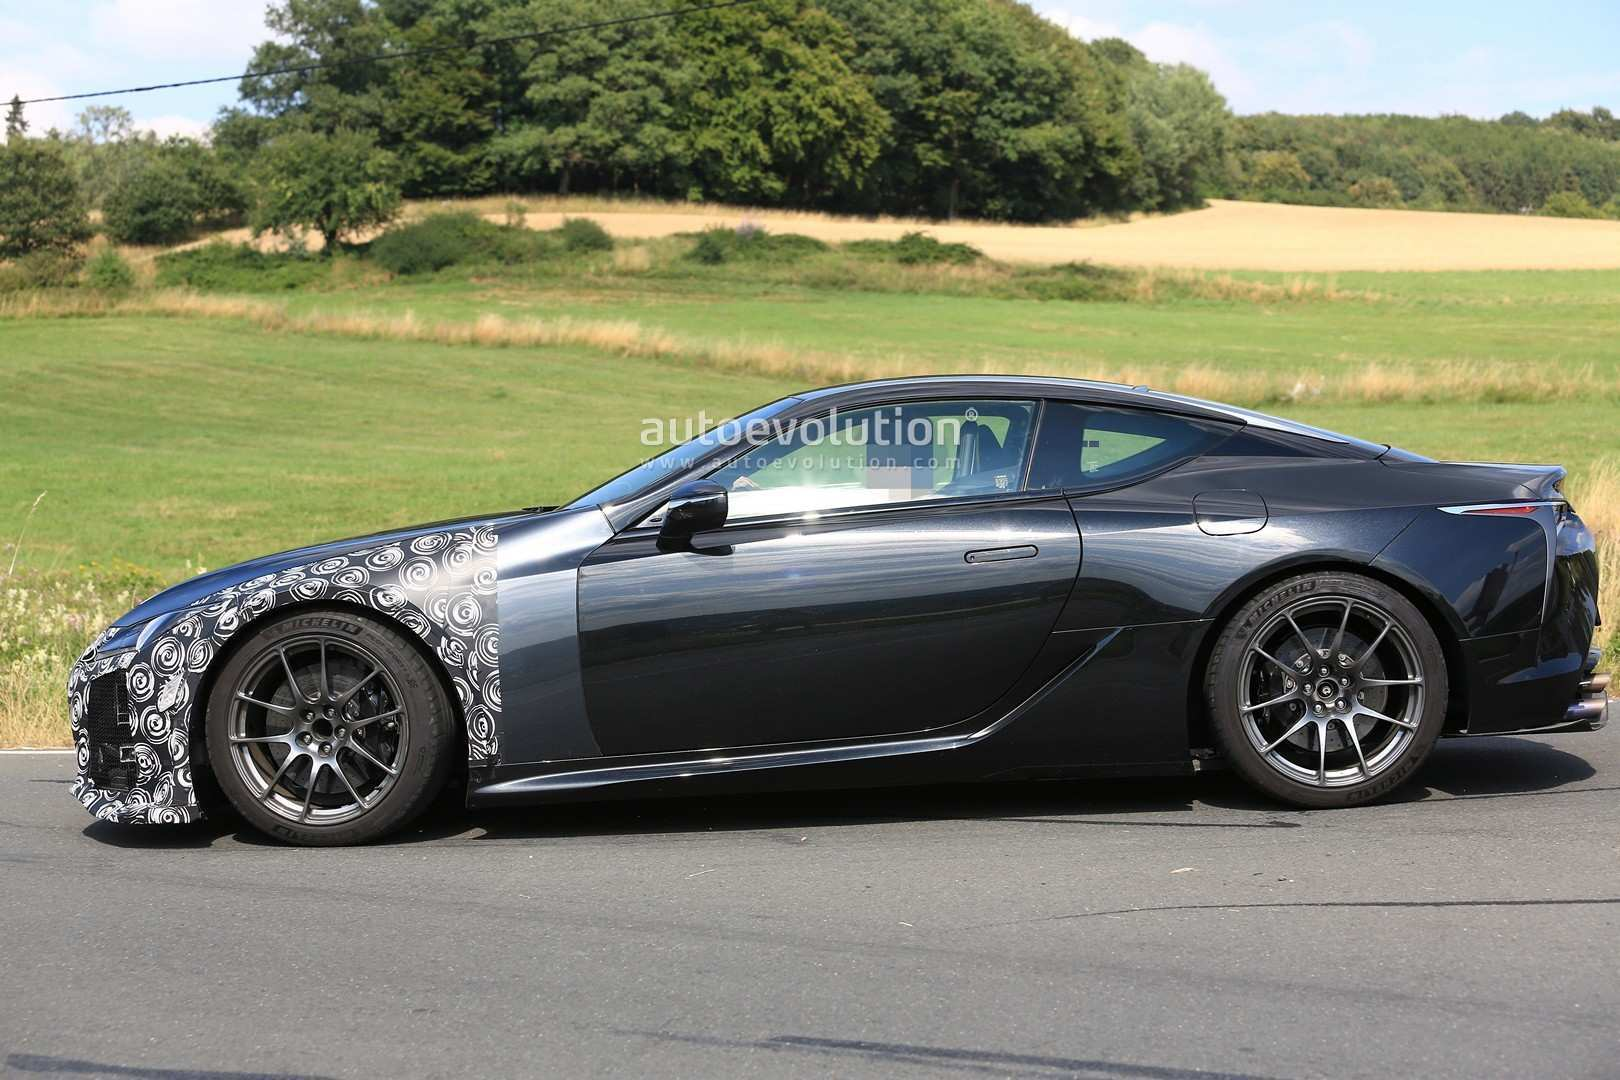 48 A 2020 Lexus Lf Lc Prices